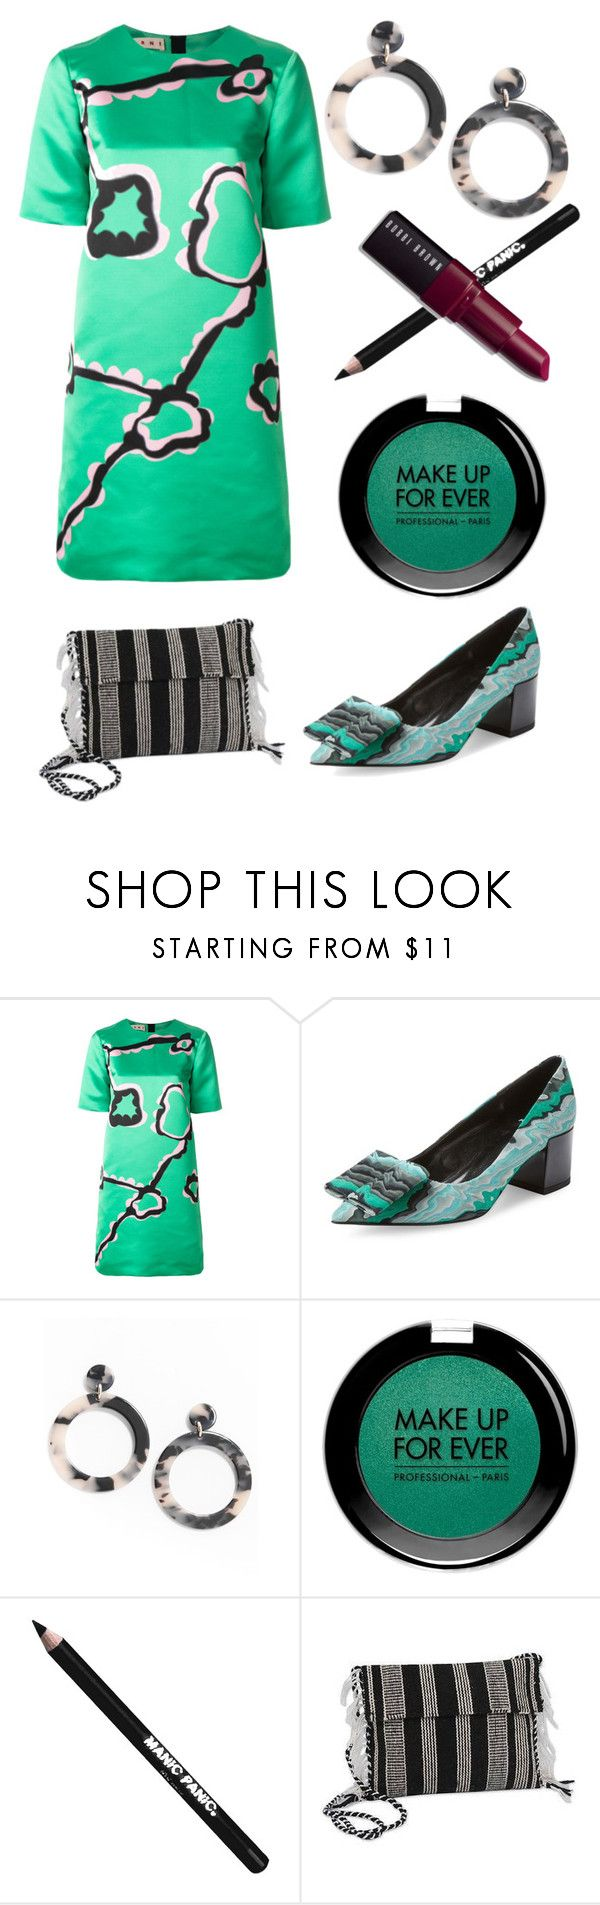 """#PolyPresents: Statement Shoes"" by rossvanderh ❤ liked on Polyvore featuring Marni, Pierre Hardy, MAKE UP FOR EVER, Manic Panic NYC, NOVICA, Bobbi Brown Cosmetics, contestentry and polyPresents"